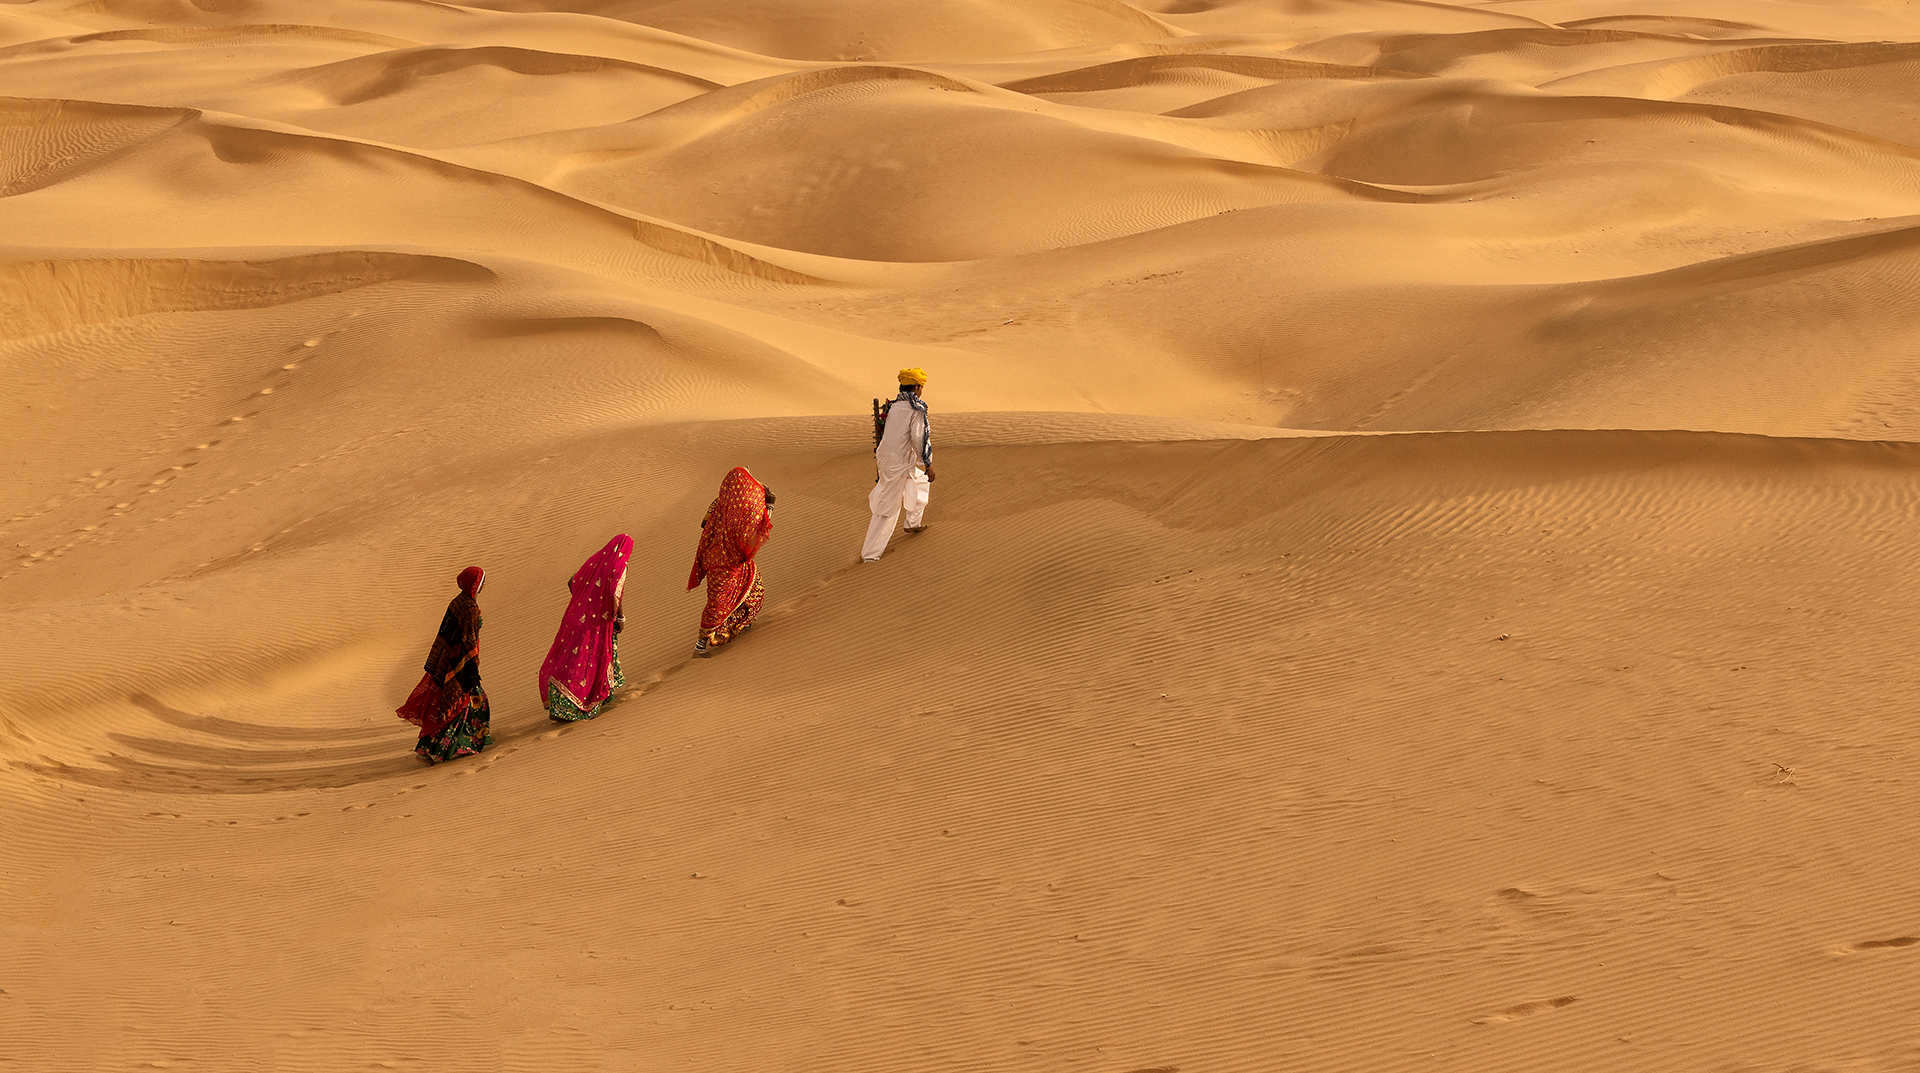 Travel guide to visit Jaisalmer : That desert